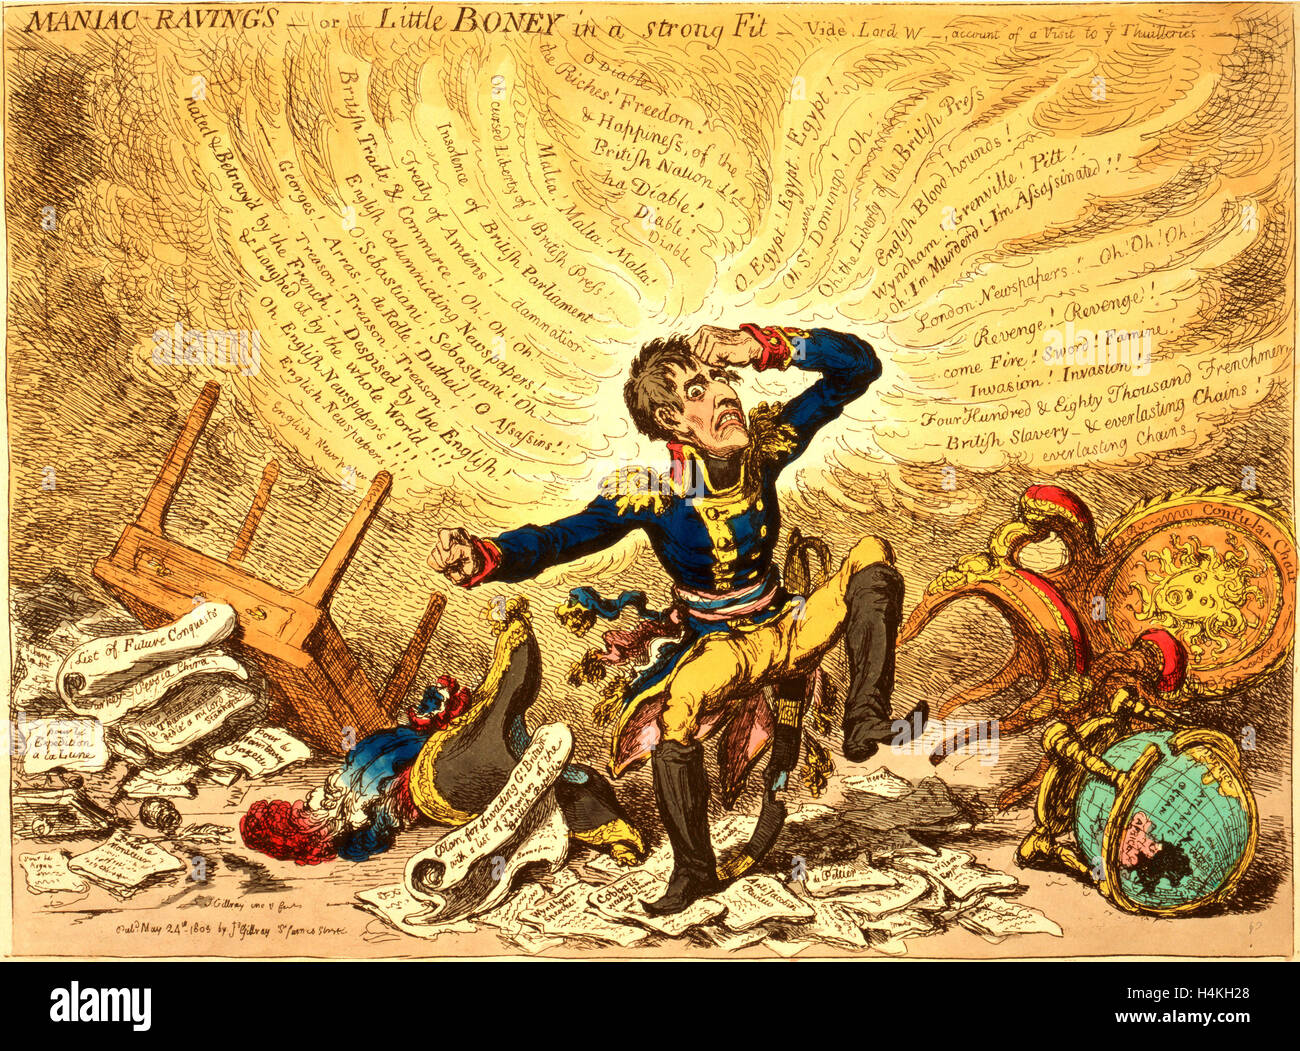 Maniac-raving's or Little Boney in a strong fit, Gillray, James, 1756-1815, engraver, London, 1803,  Napoleon - Stock Image